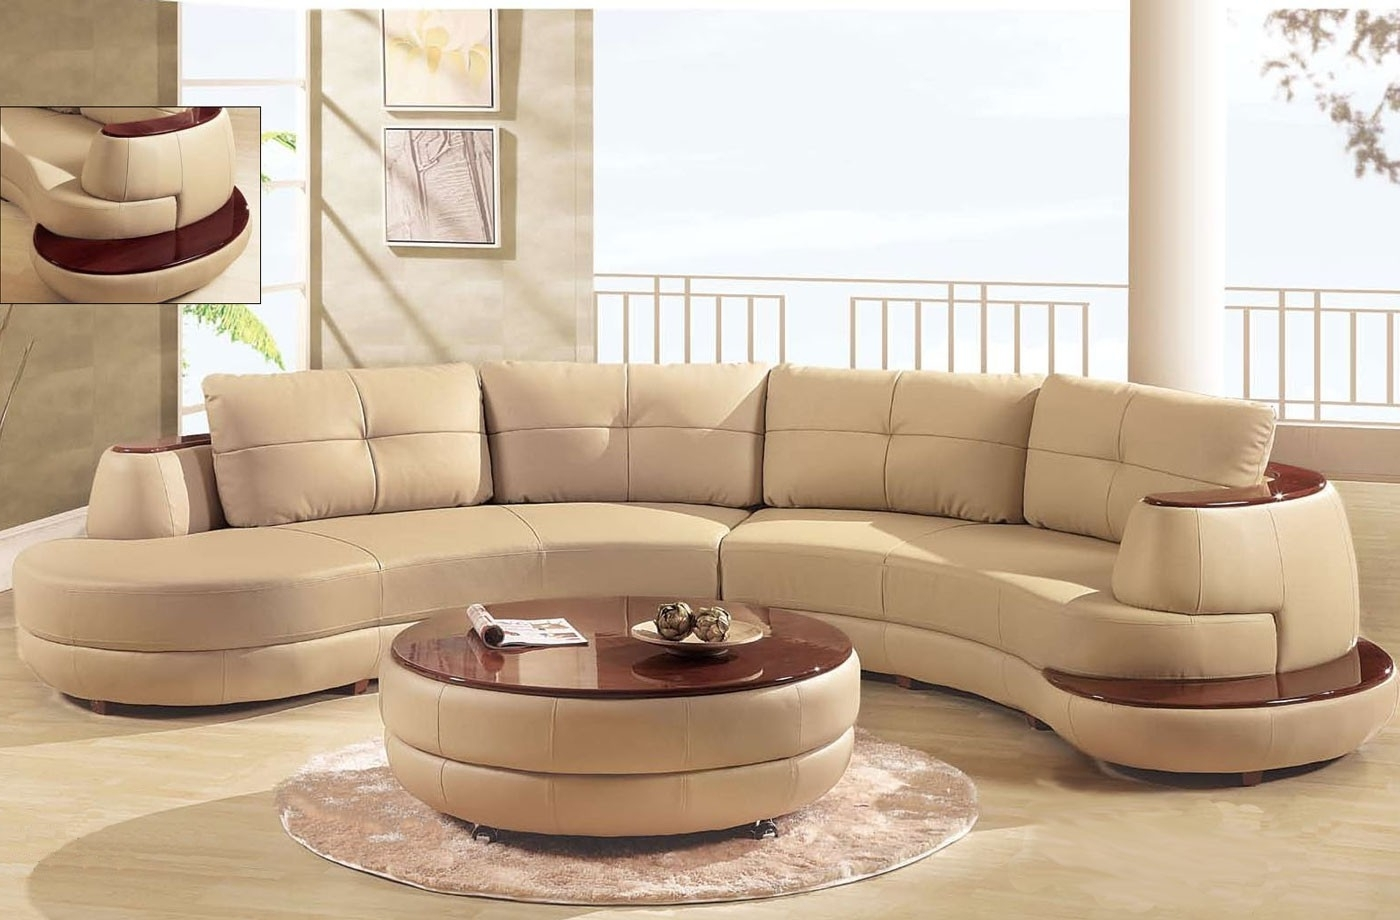 Best And Newest Furniture Living Room Curved Red Top Grain Leather Sectional Sofa Inside Circular Sectional Sofas (View 13 of 15)